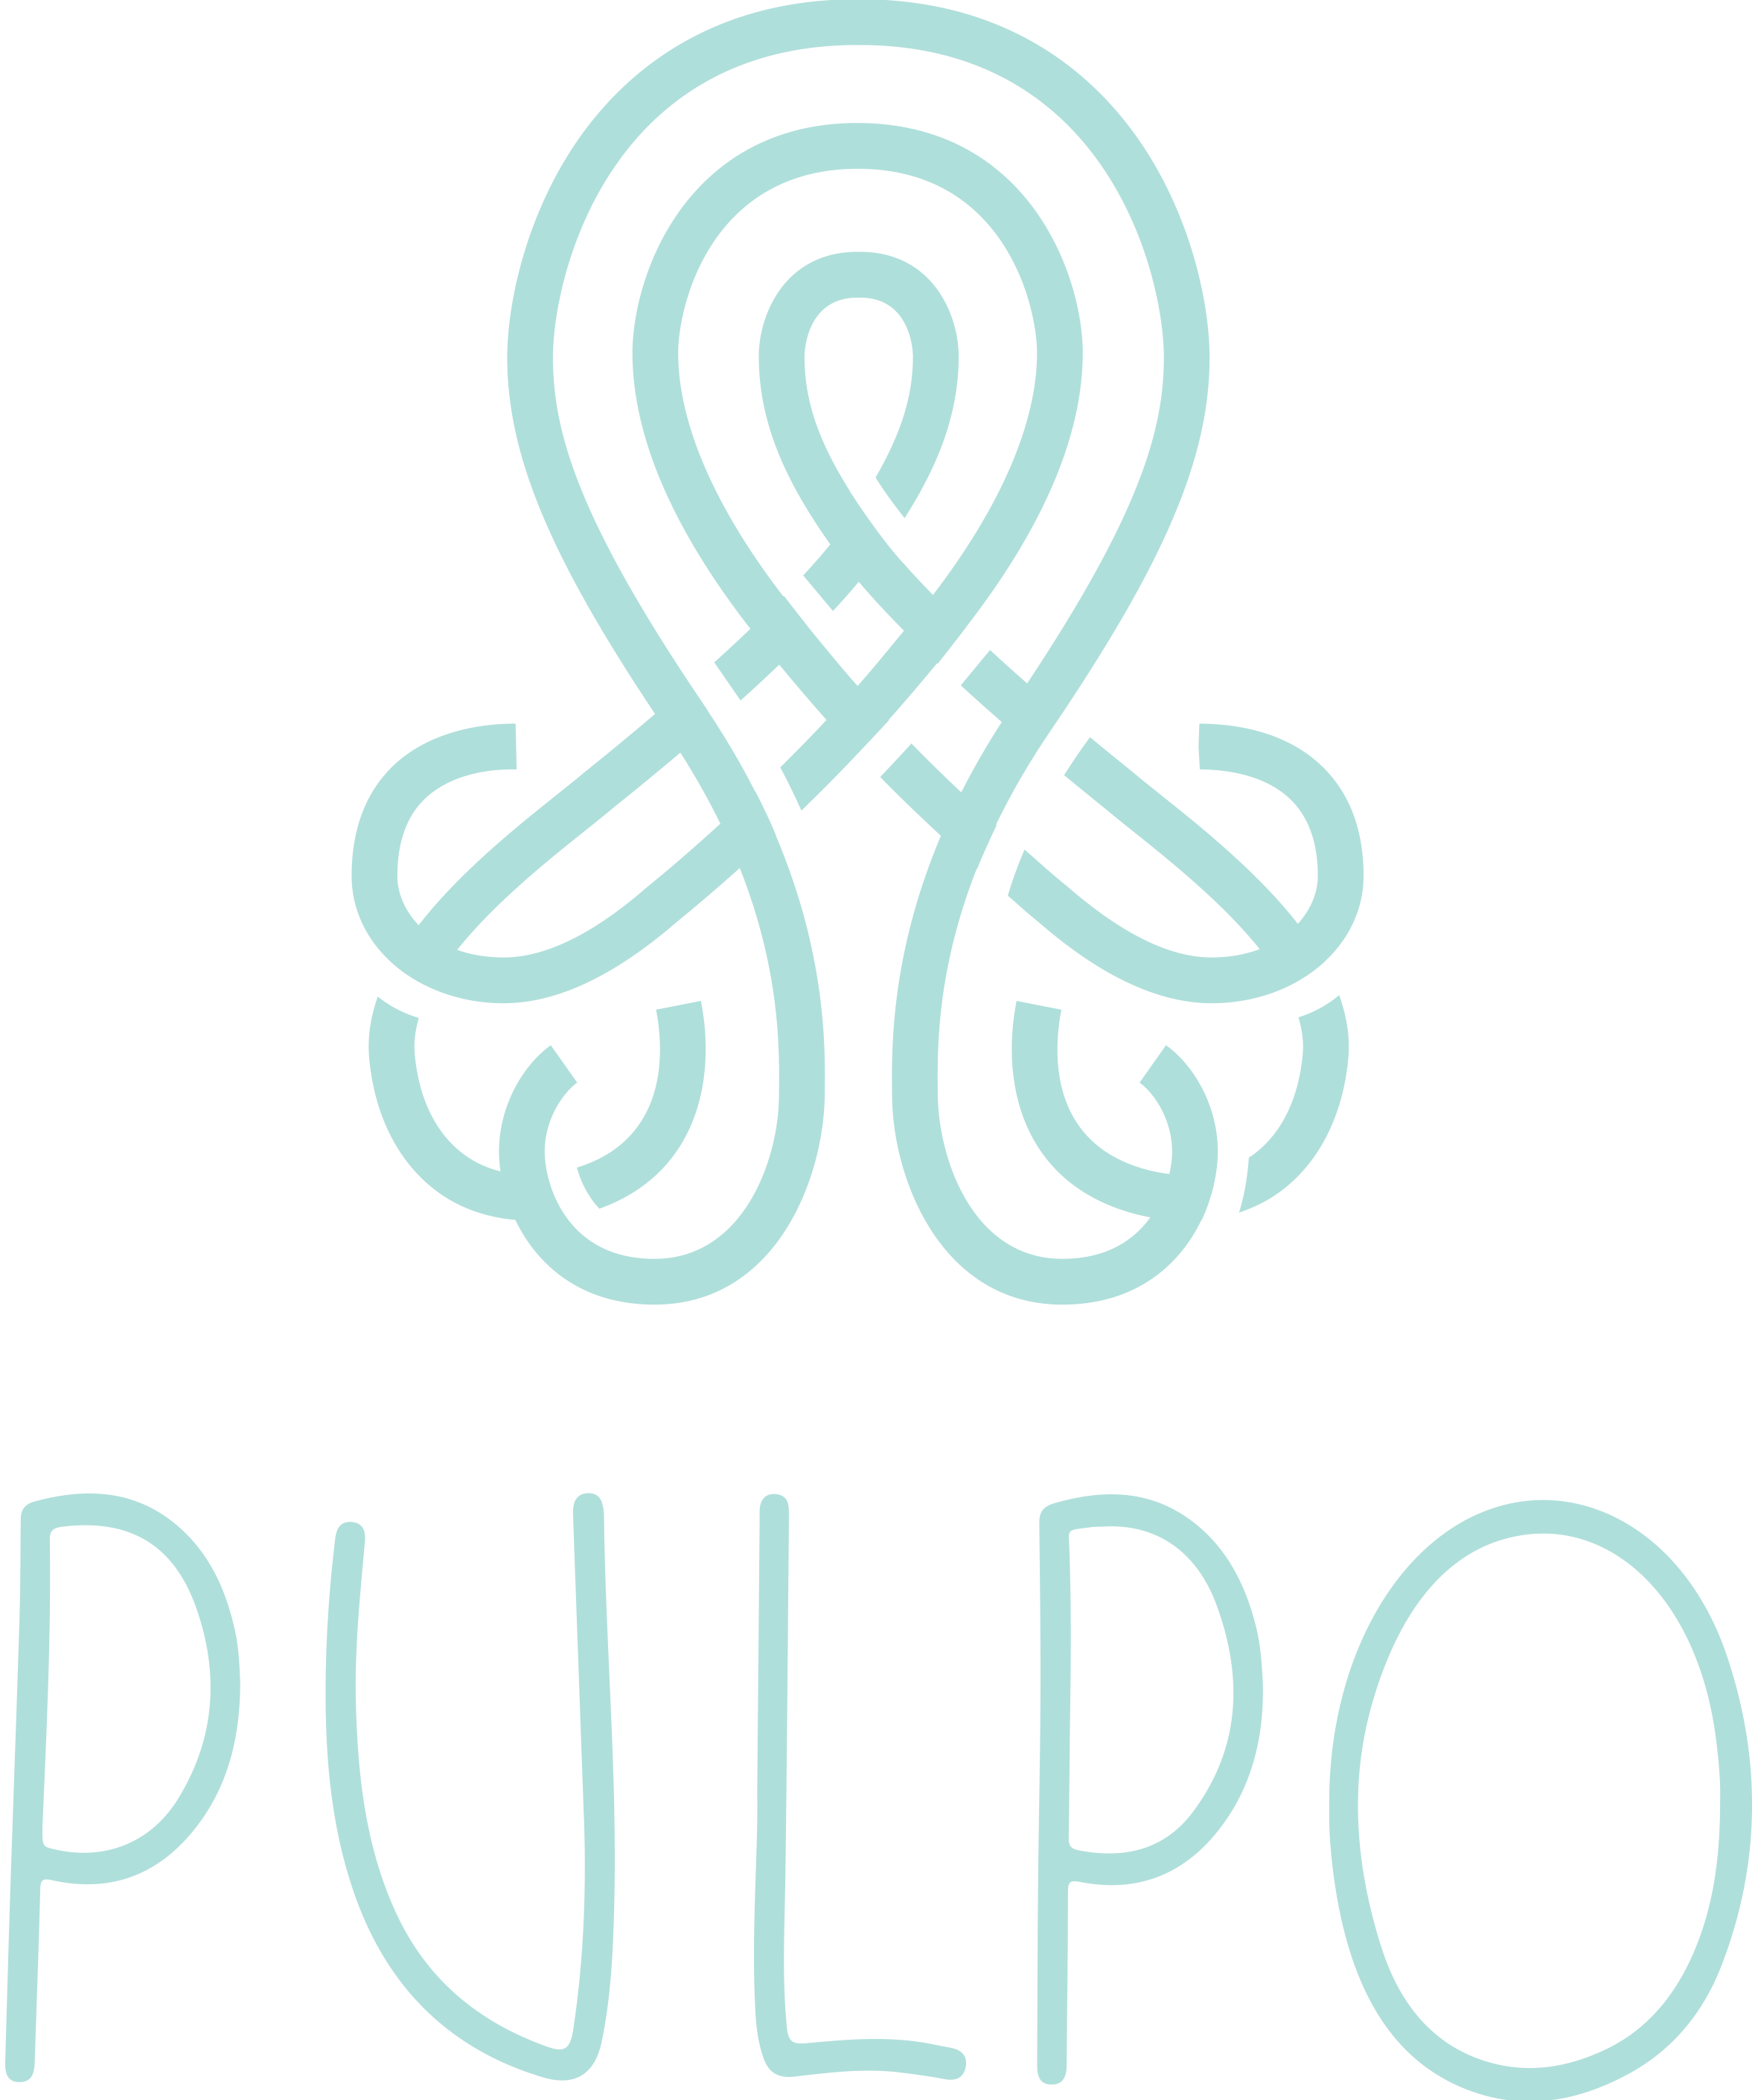 logo_pulpo_blauw_RGB_high.png